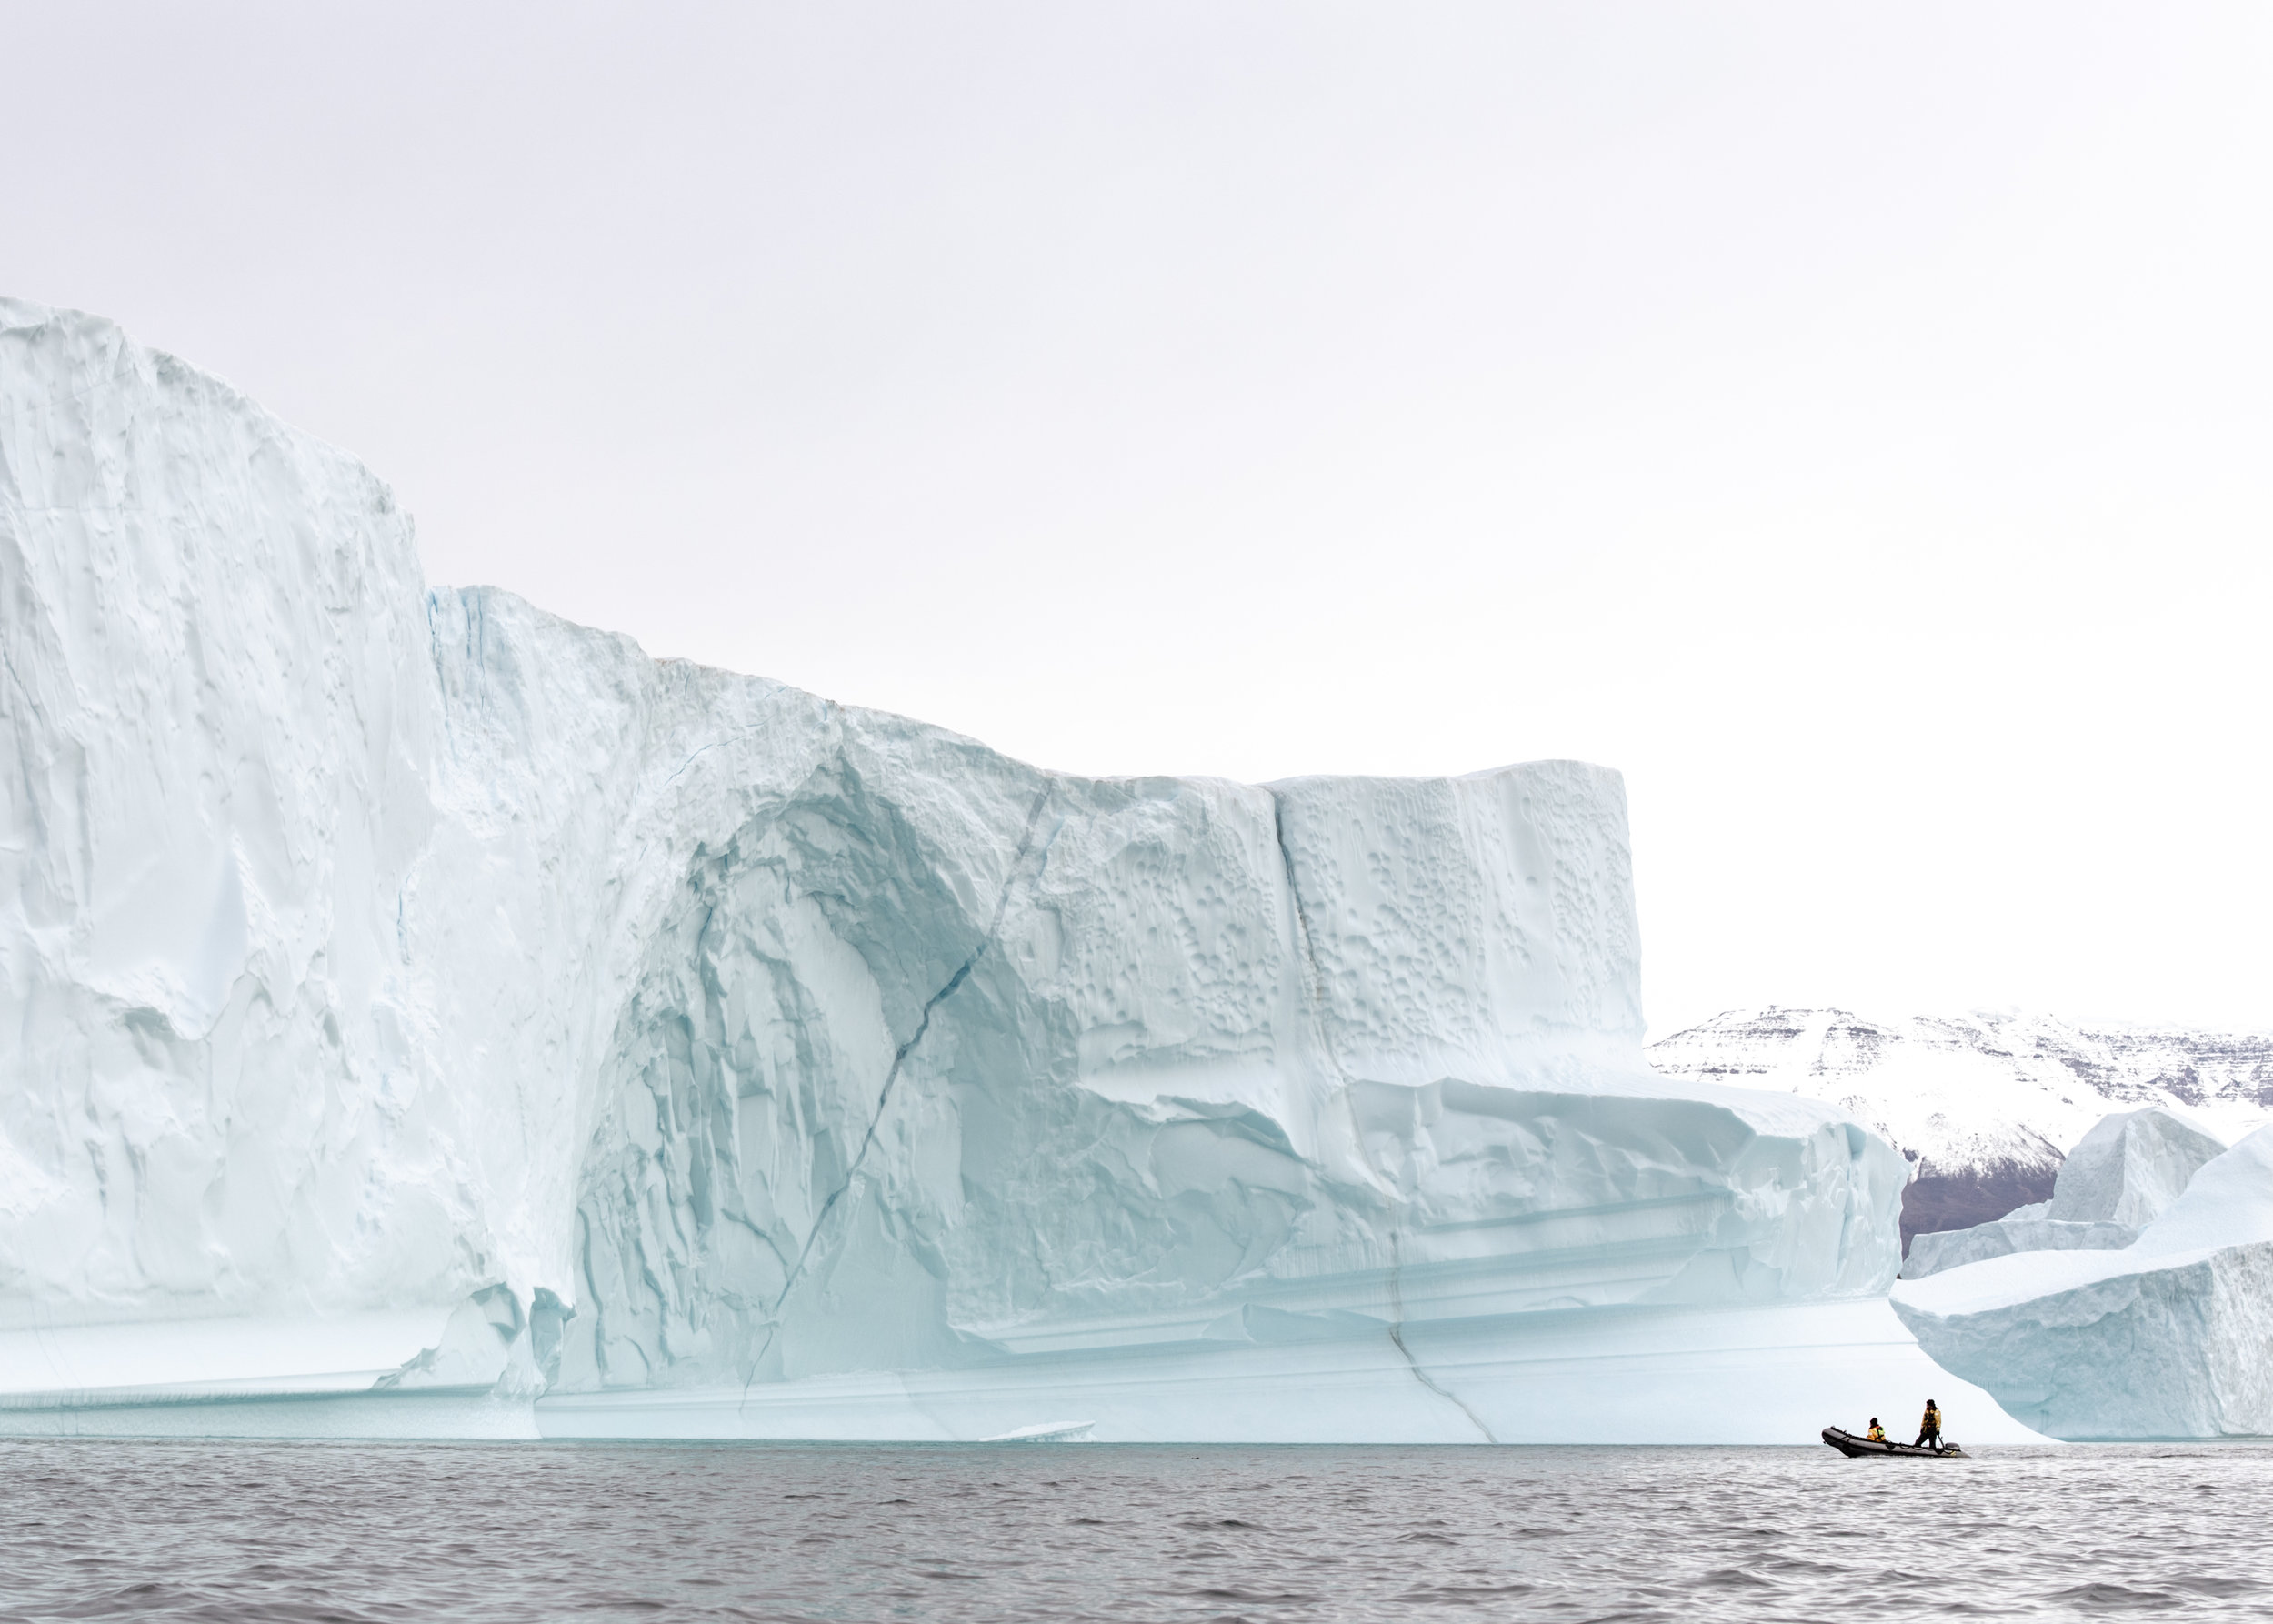 Iceberg city - A city of ice, a city of coldBasalt cliffs fortify withSky above and ocean belowArctic cathedrals, wint'ry chateauxStillness surrendered, ontoA morning sunrise, cloud aglowCoffee in hand and a new day aheadOur ship cuts the surface hereJust like a tailors scissors' flow